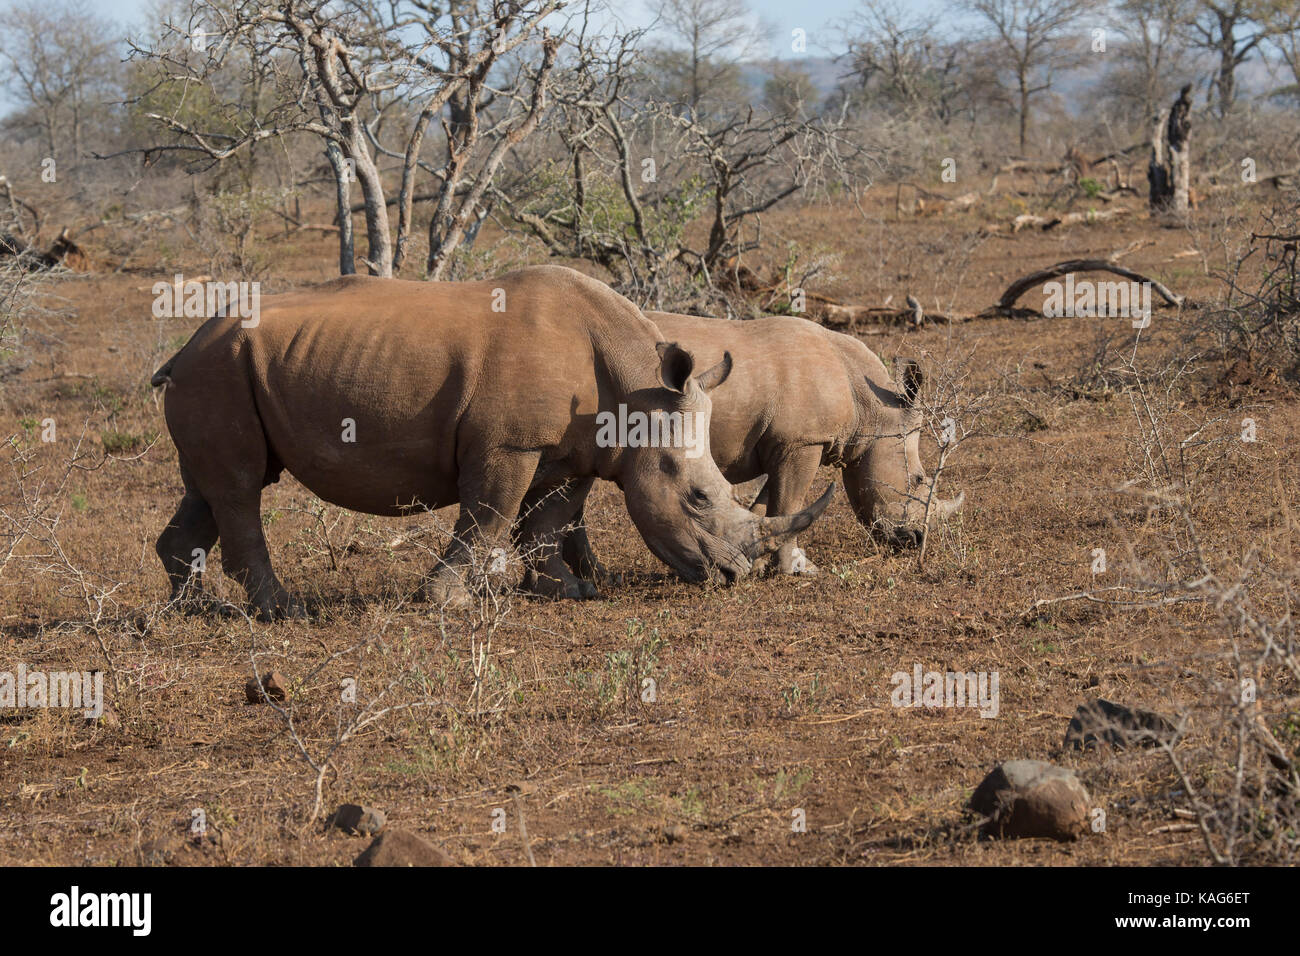 A pair of Adult White Rhinoceros Ceratotherium simum  in open scrubland in South Africa - Stock Image